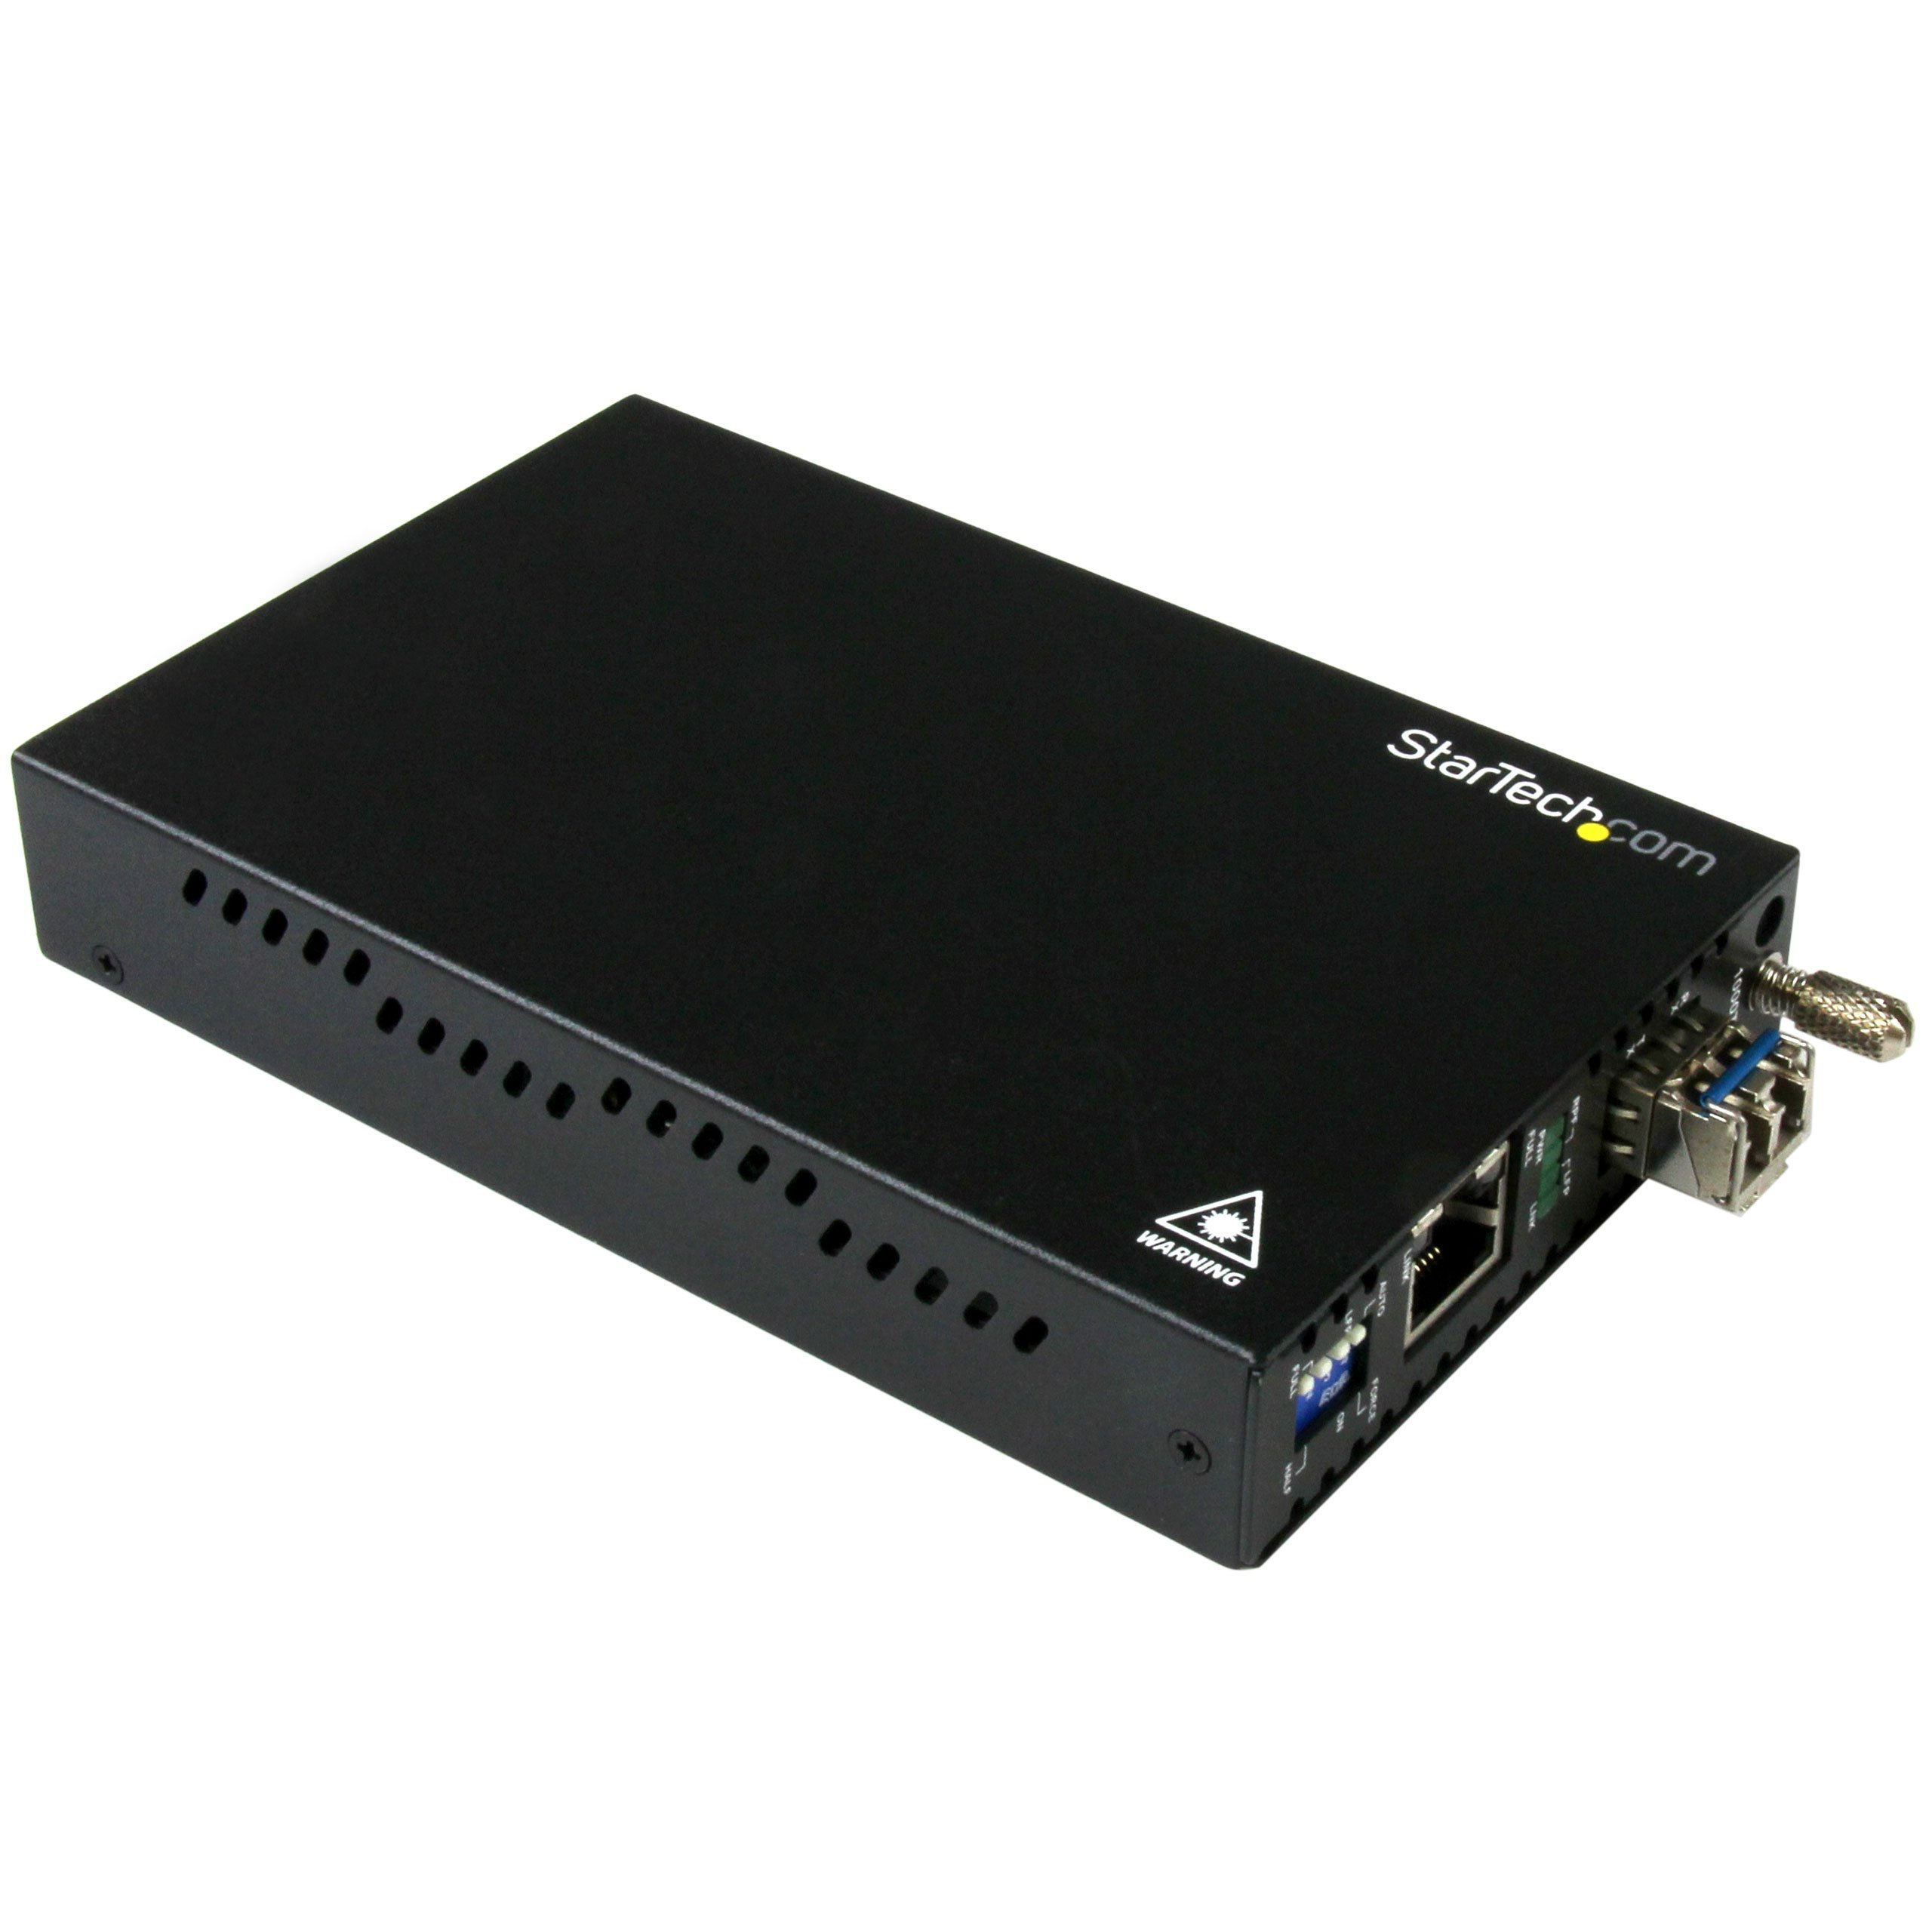 StarTech.com Gigabit Ethernet Copper-to-Fiber Media Converter - SM LC - 10 km ET91000SM10 by StarTech